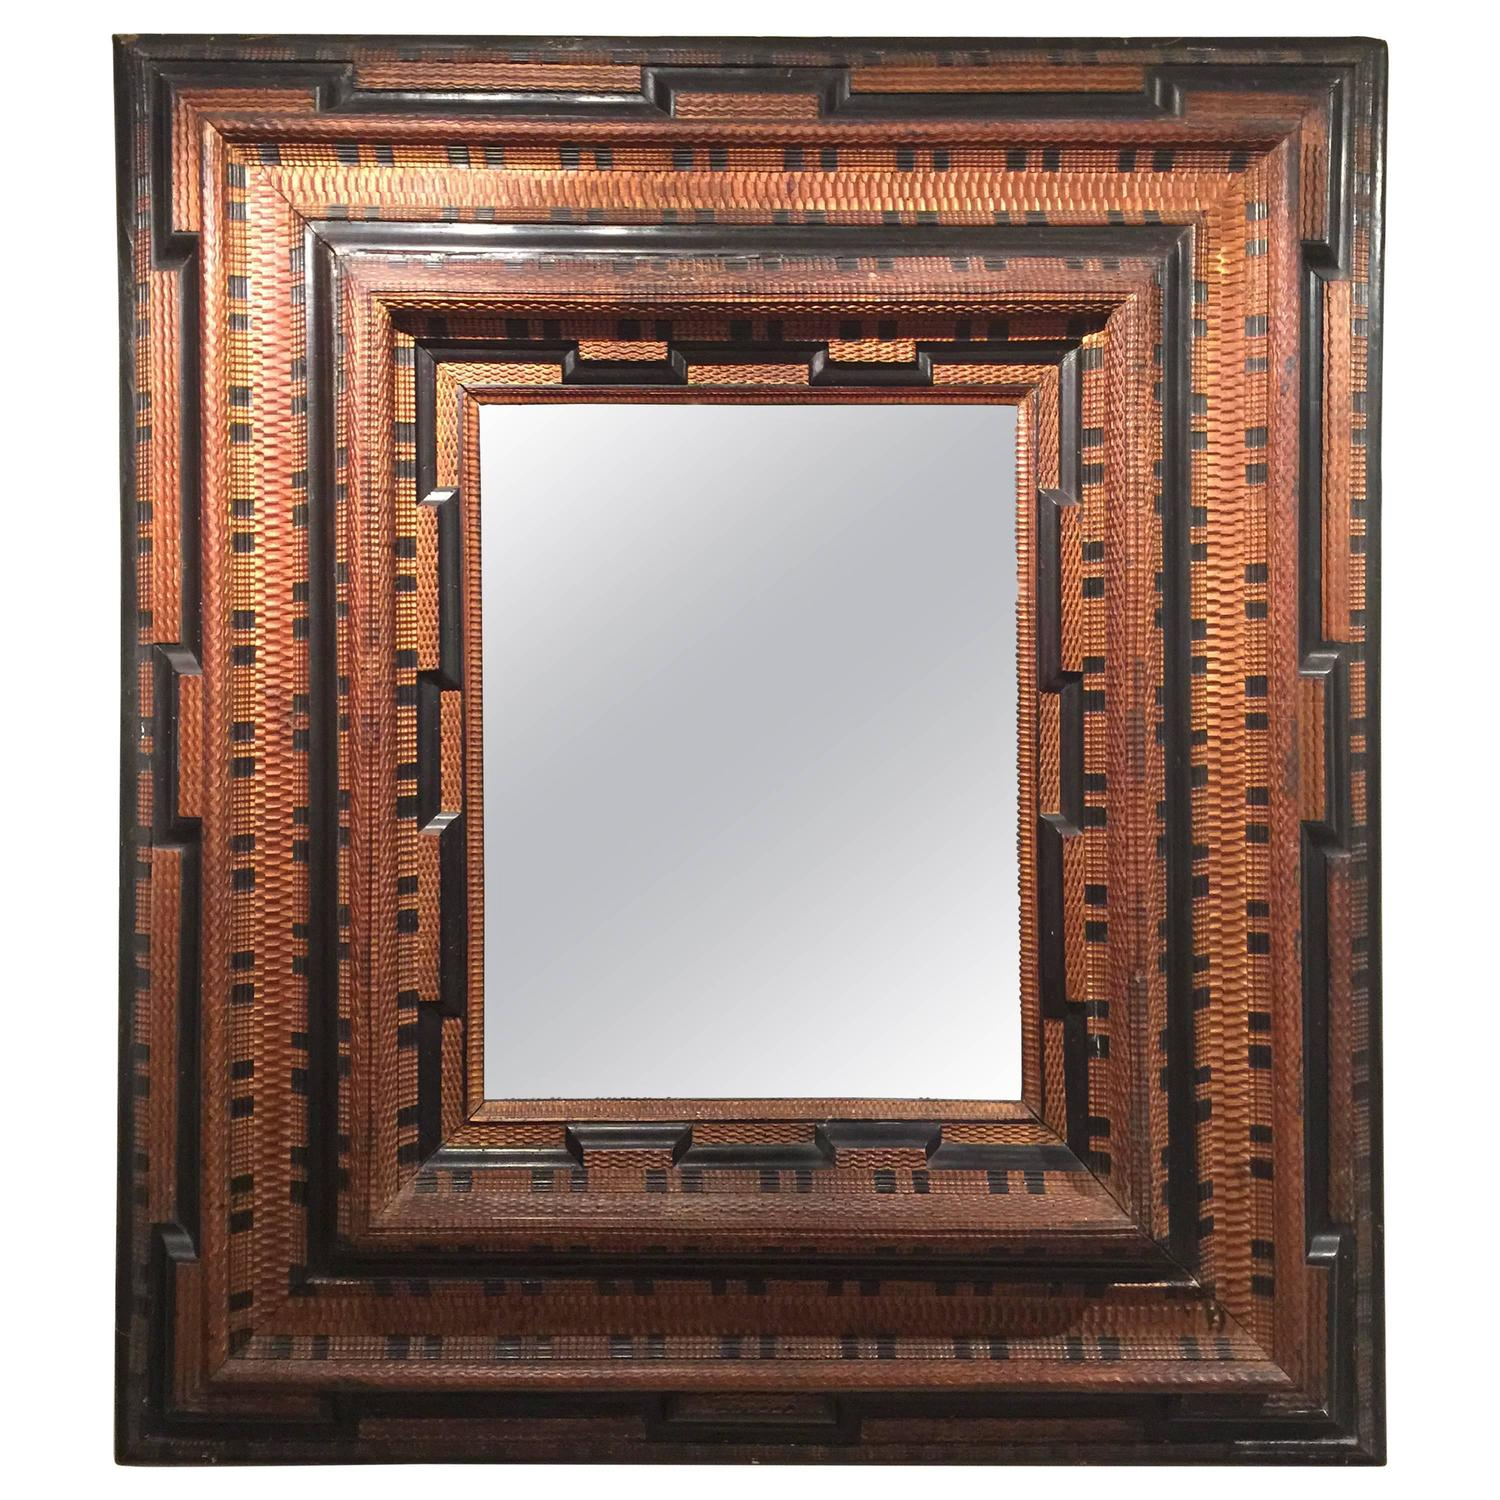 Important dutch mirror 17th century at 1stdibs for 17th century mirrors